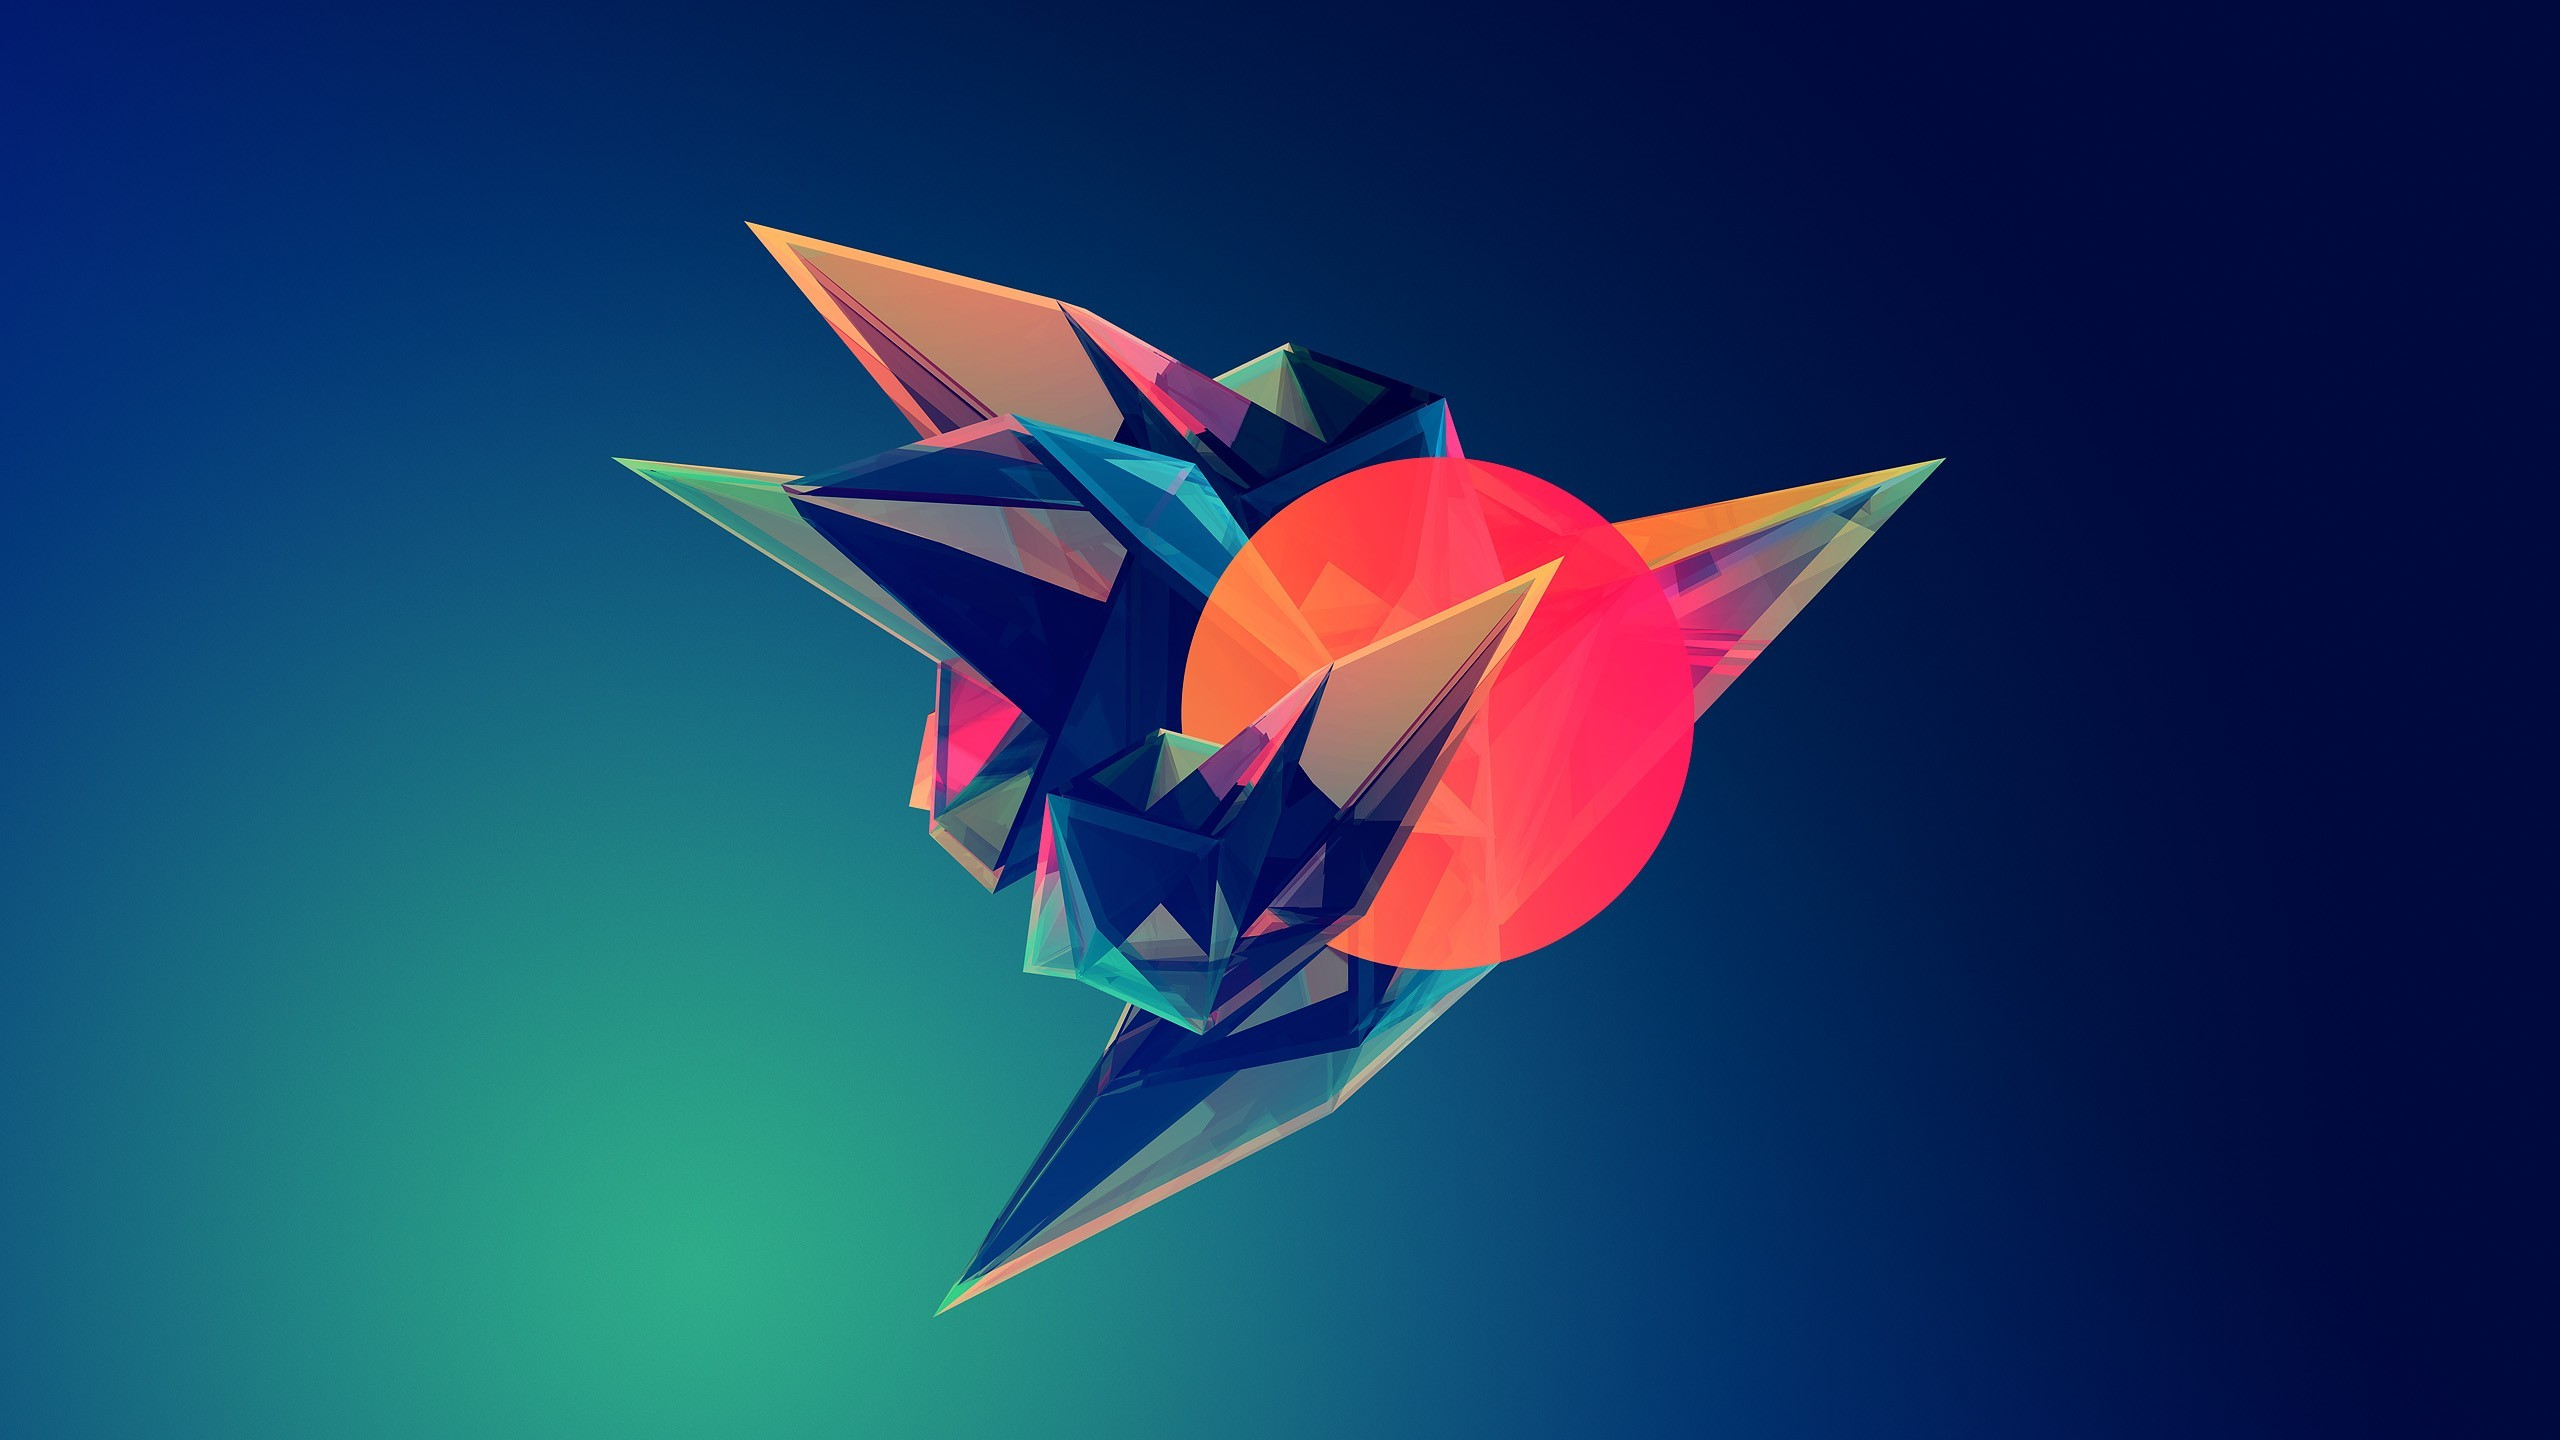 Cool Geometric Wallpapers 81 Images